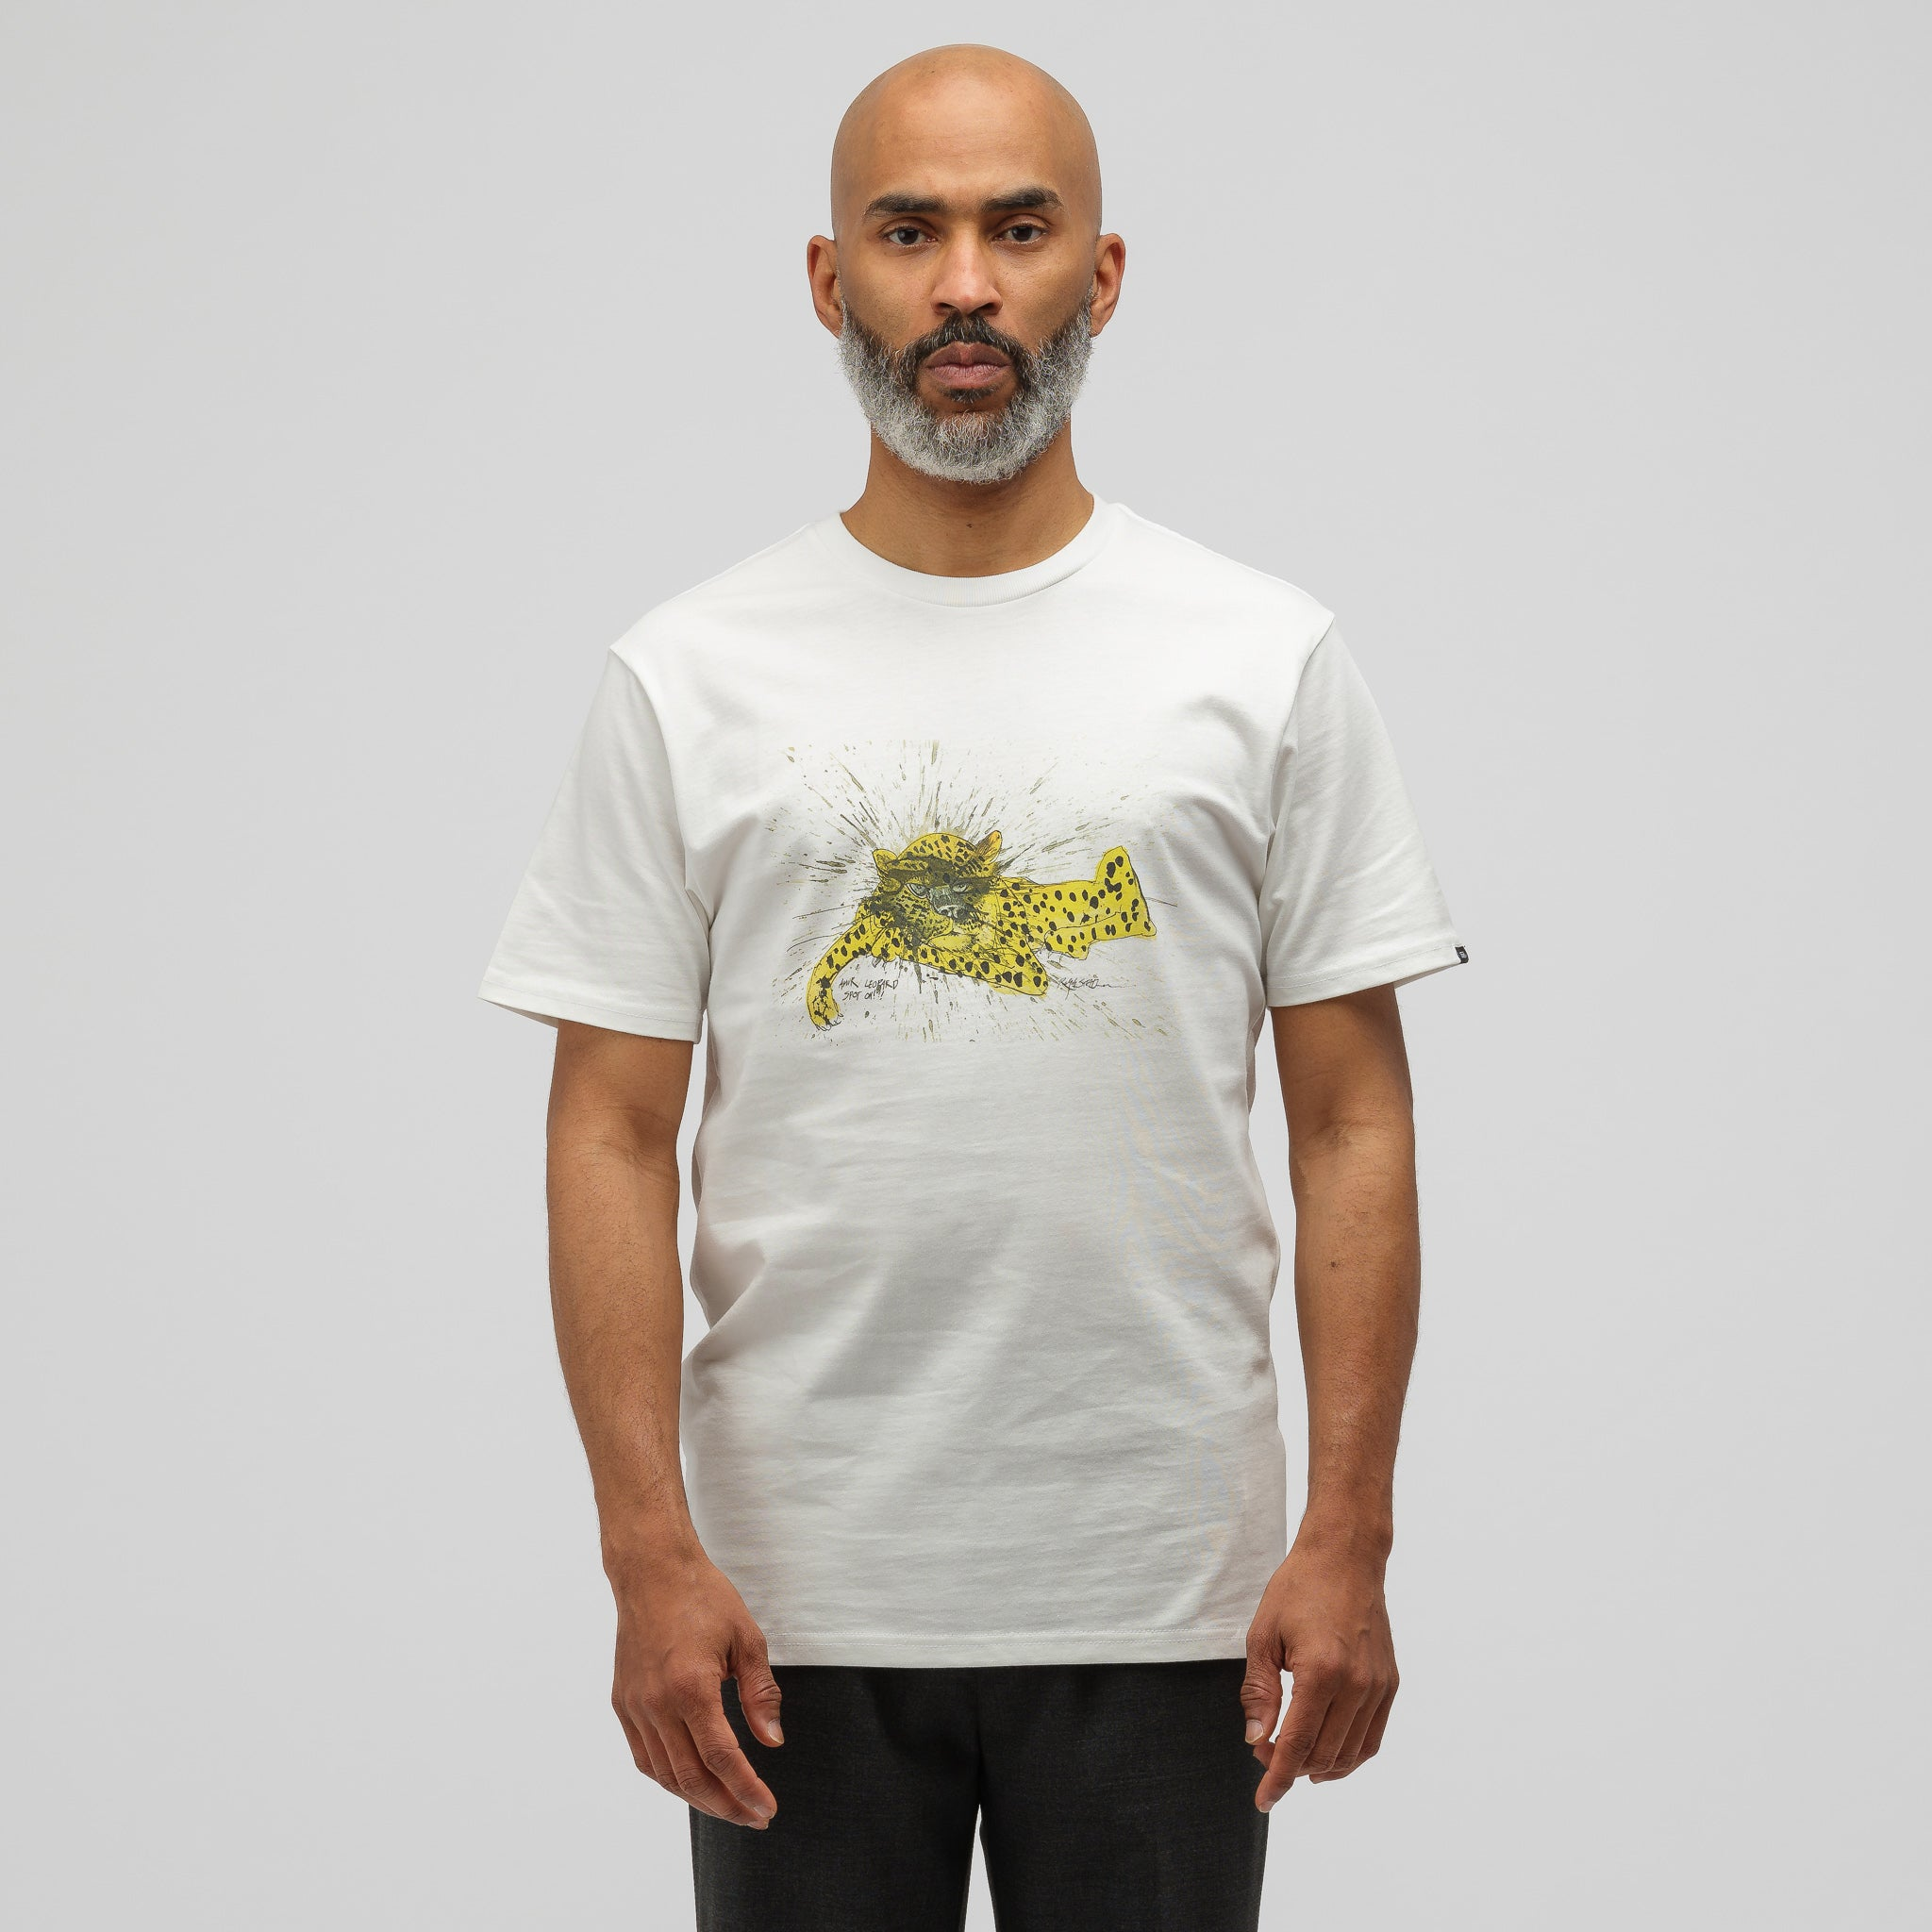 x Ralph Steadman Amur Leopard T-Shirt in White